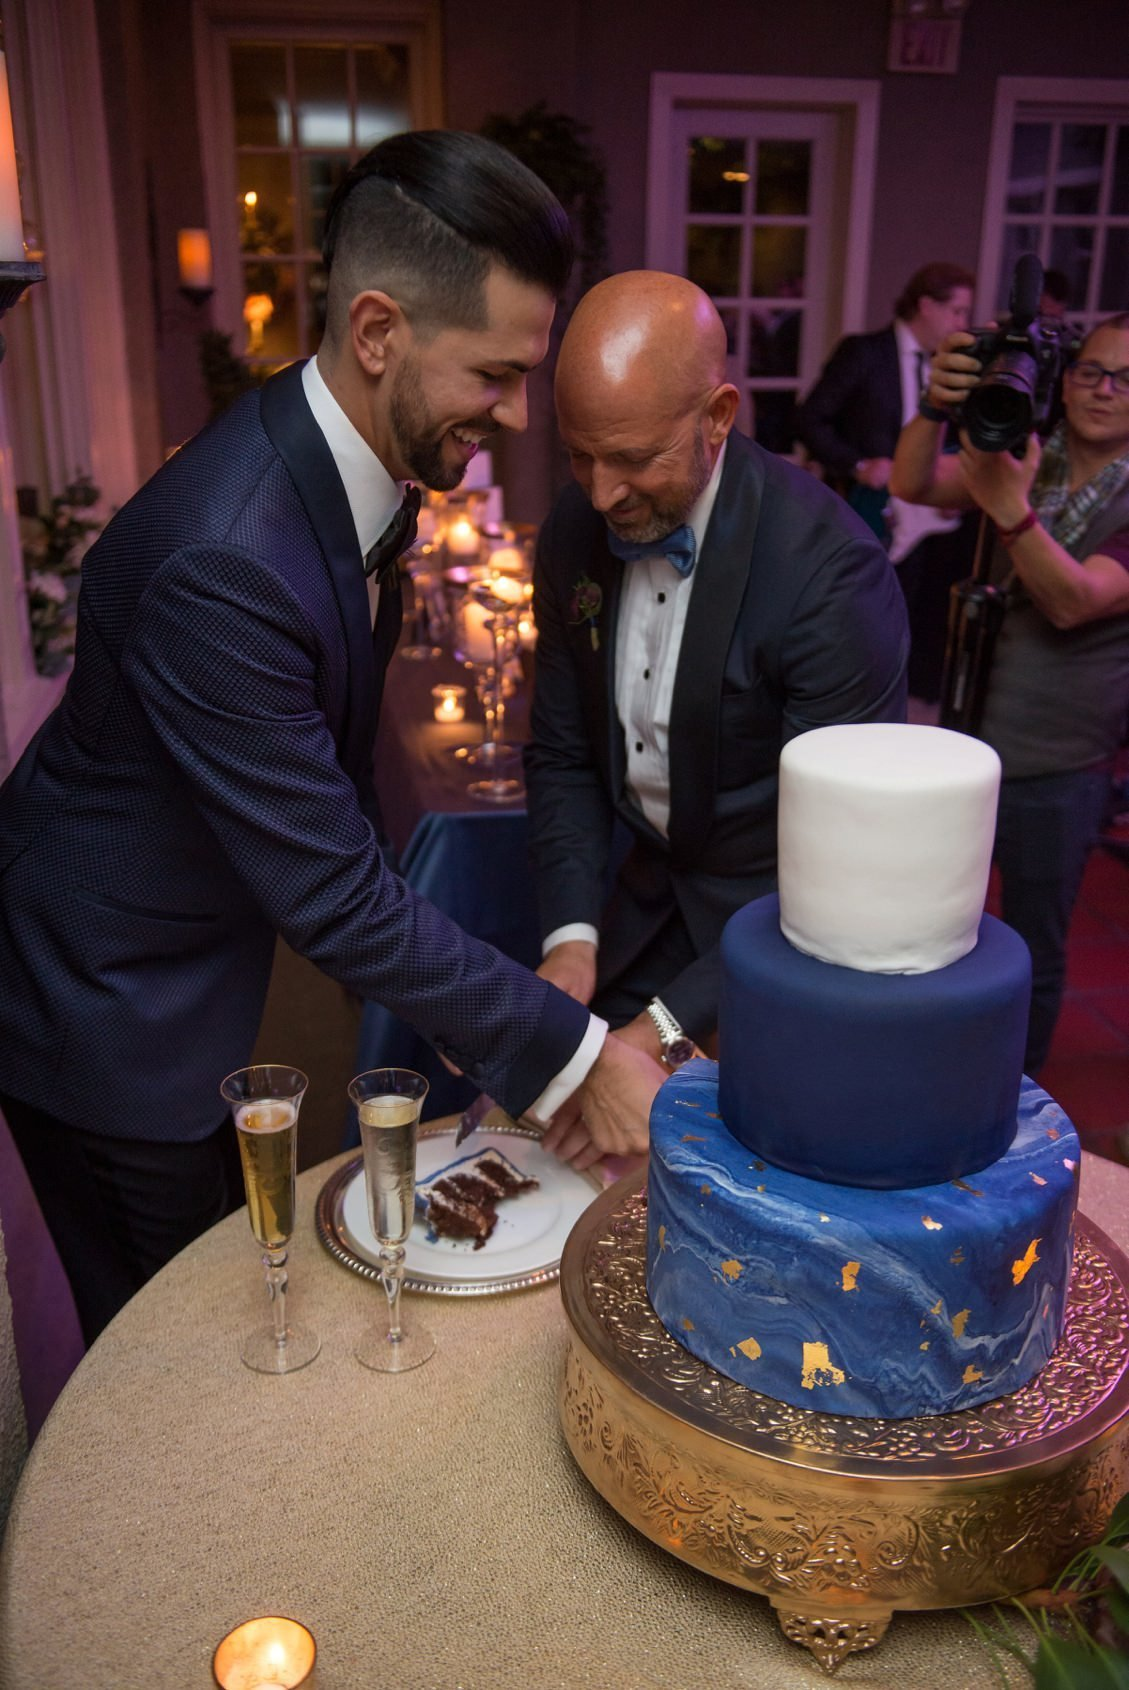 Brendan & Ryan cut their gorgeous wedding cake during their wedding at Lord Thompson Manor